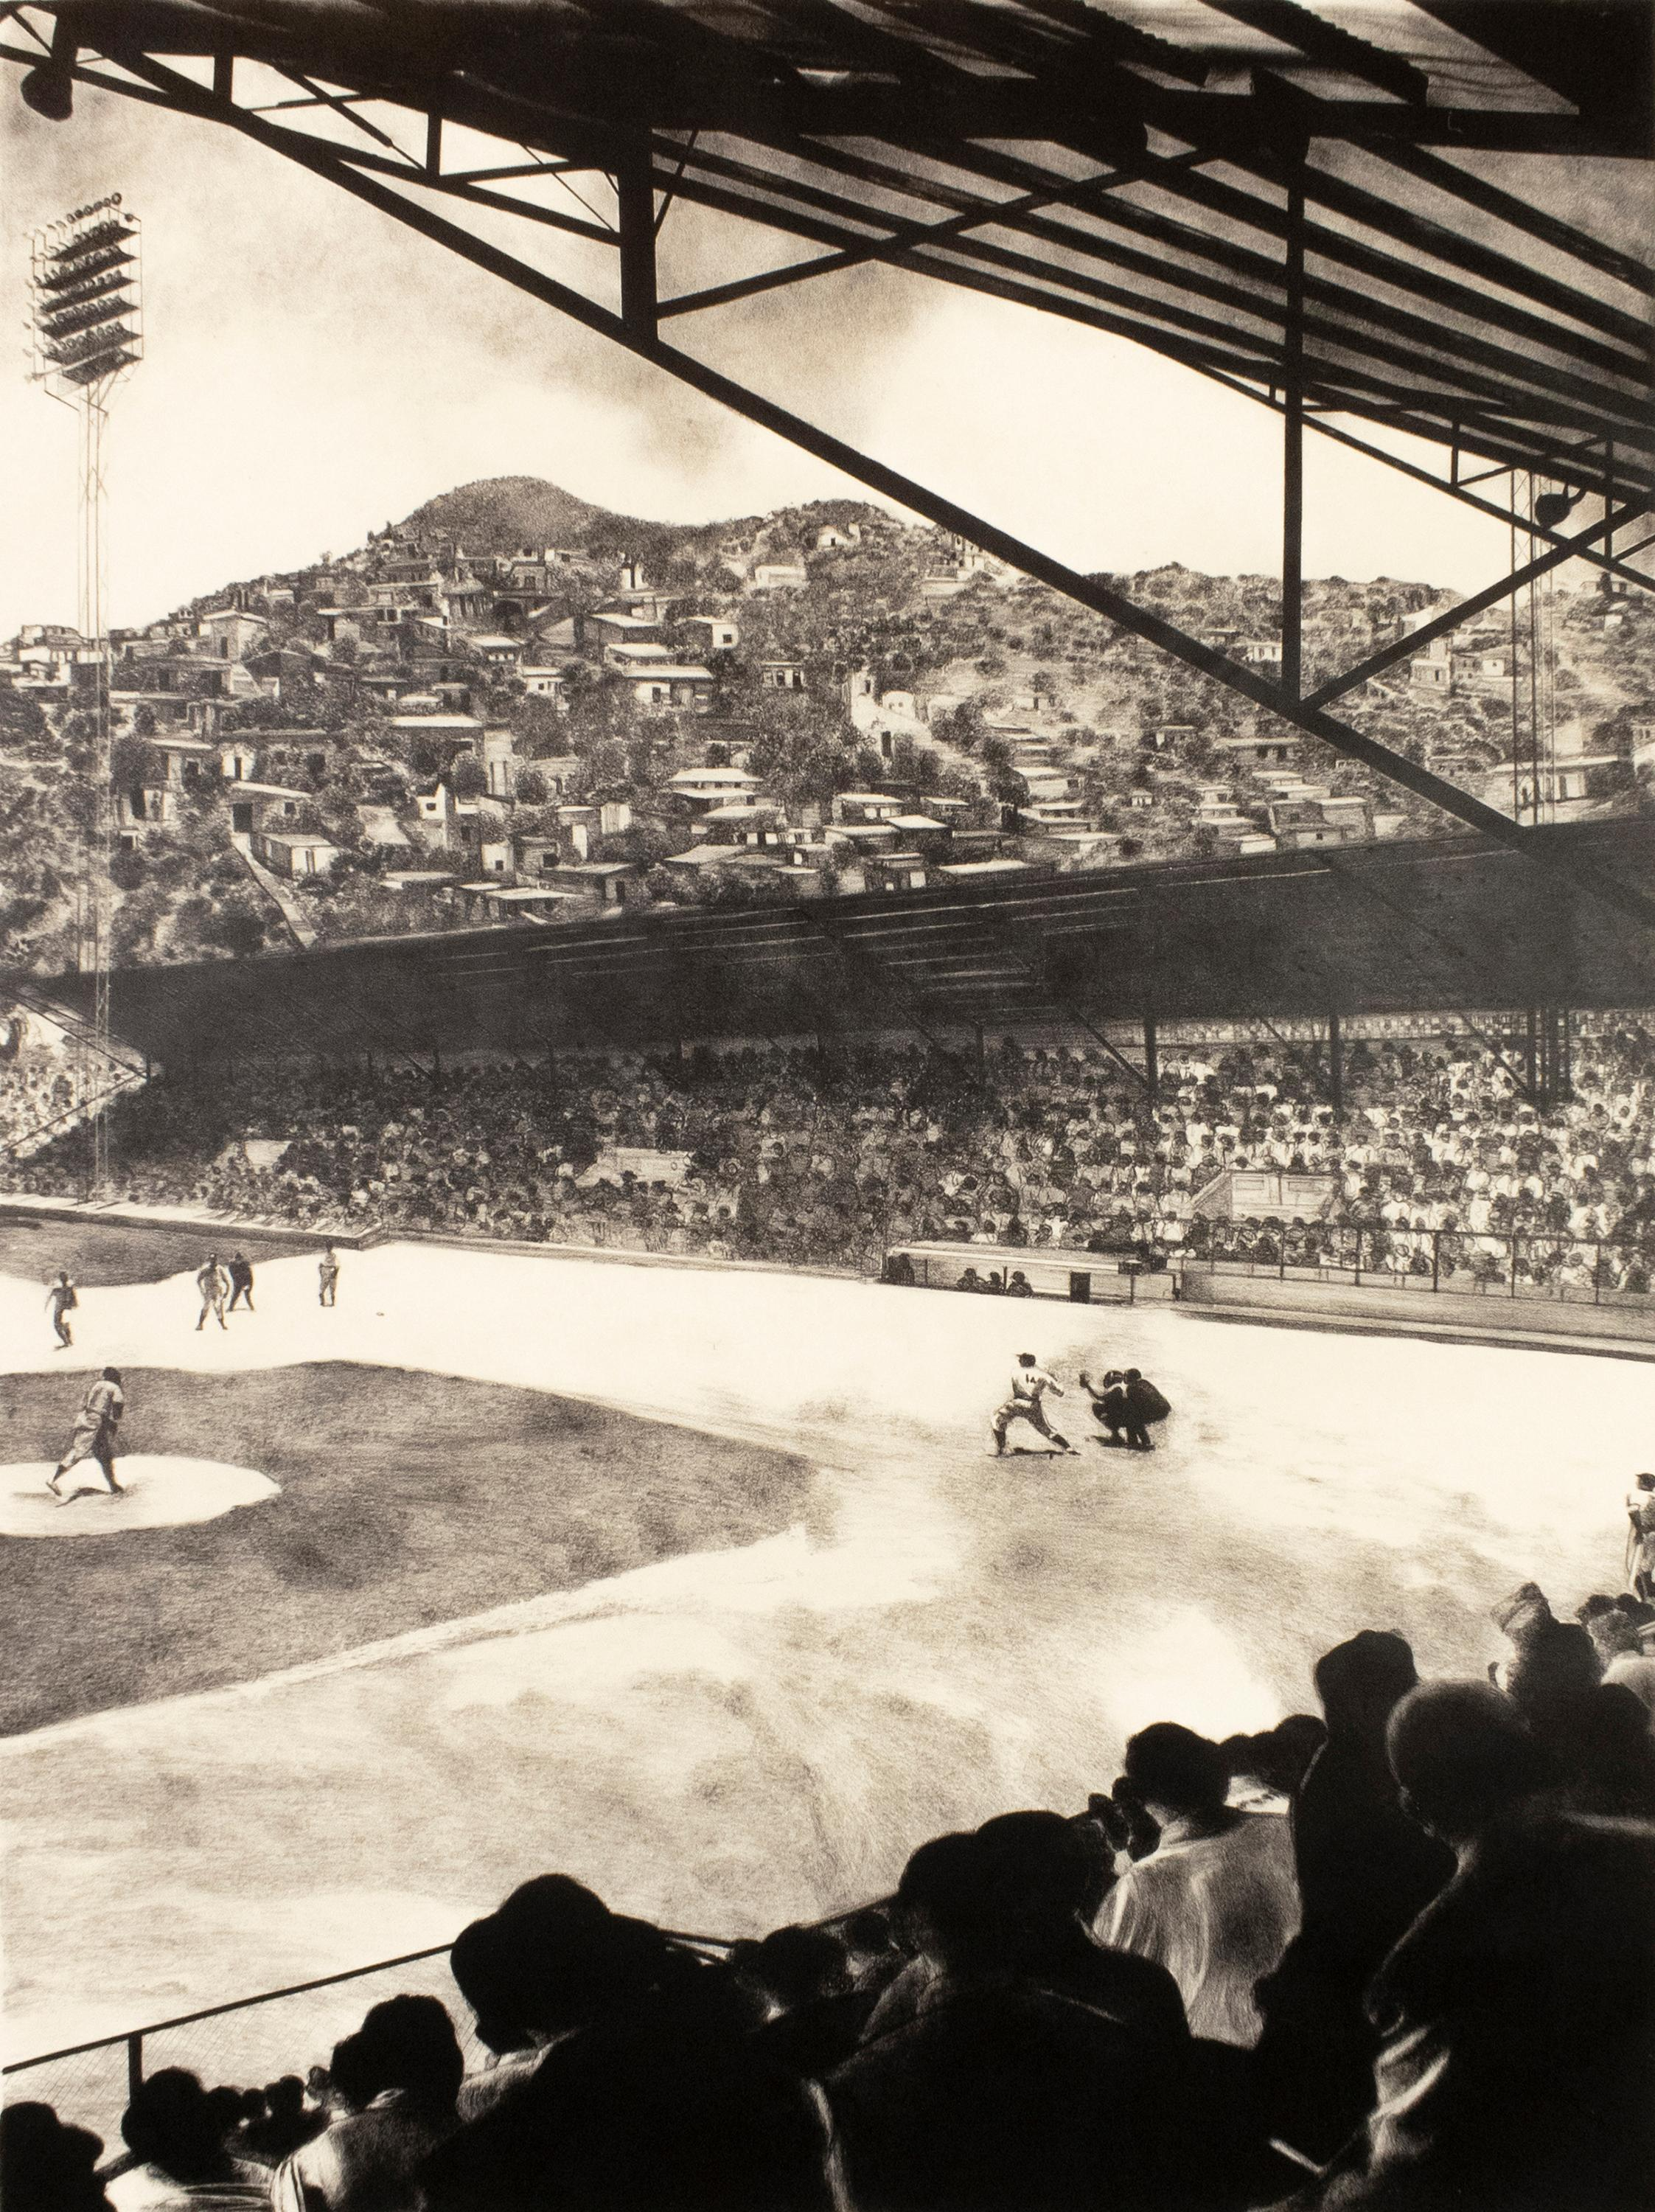 Baseball Game: realist large-scale black and white drawing of sports game